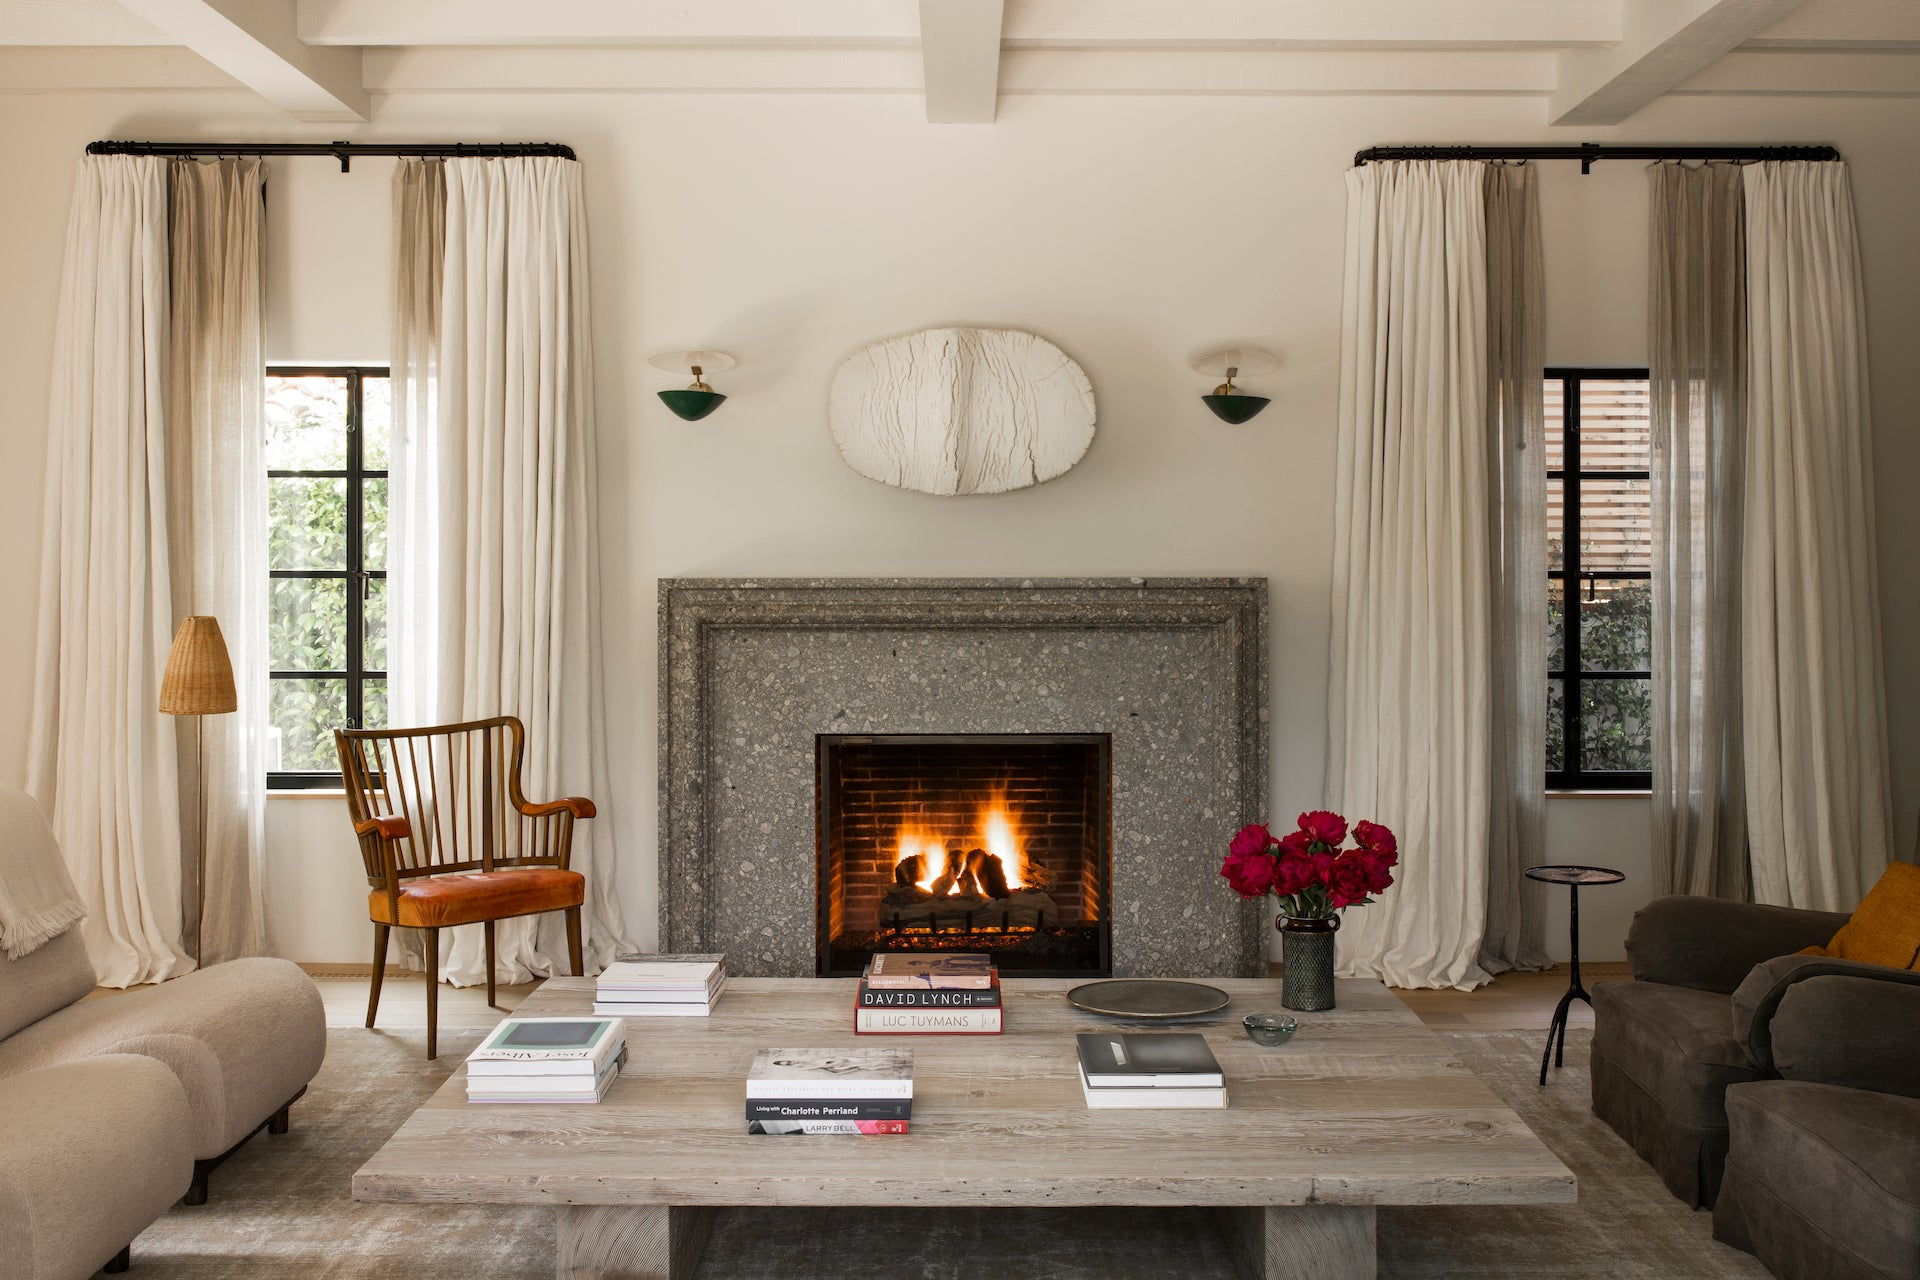 The Flats by Clements Design. Photo © William Abranowicz and Shade Degges; courtesy of Rizzoli